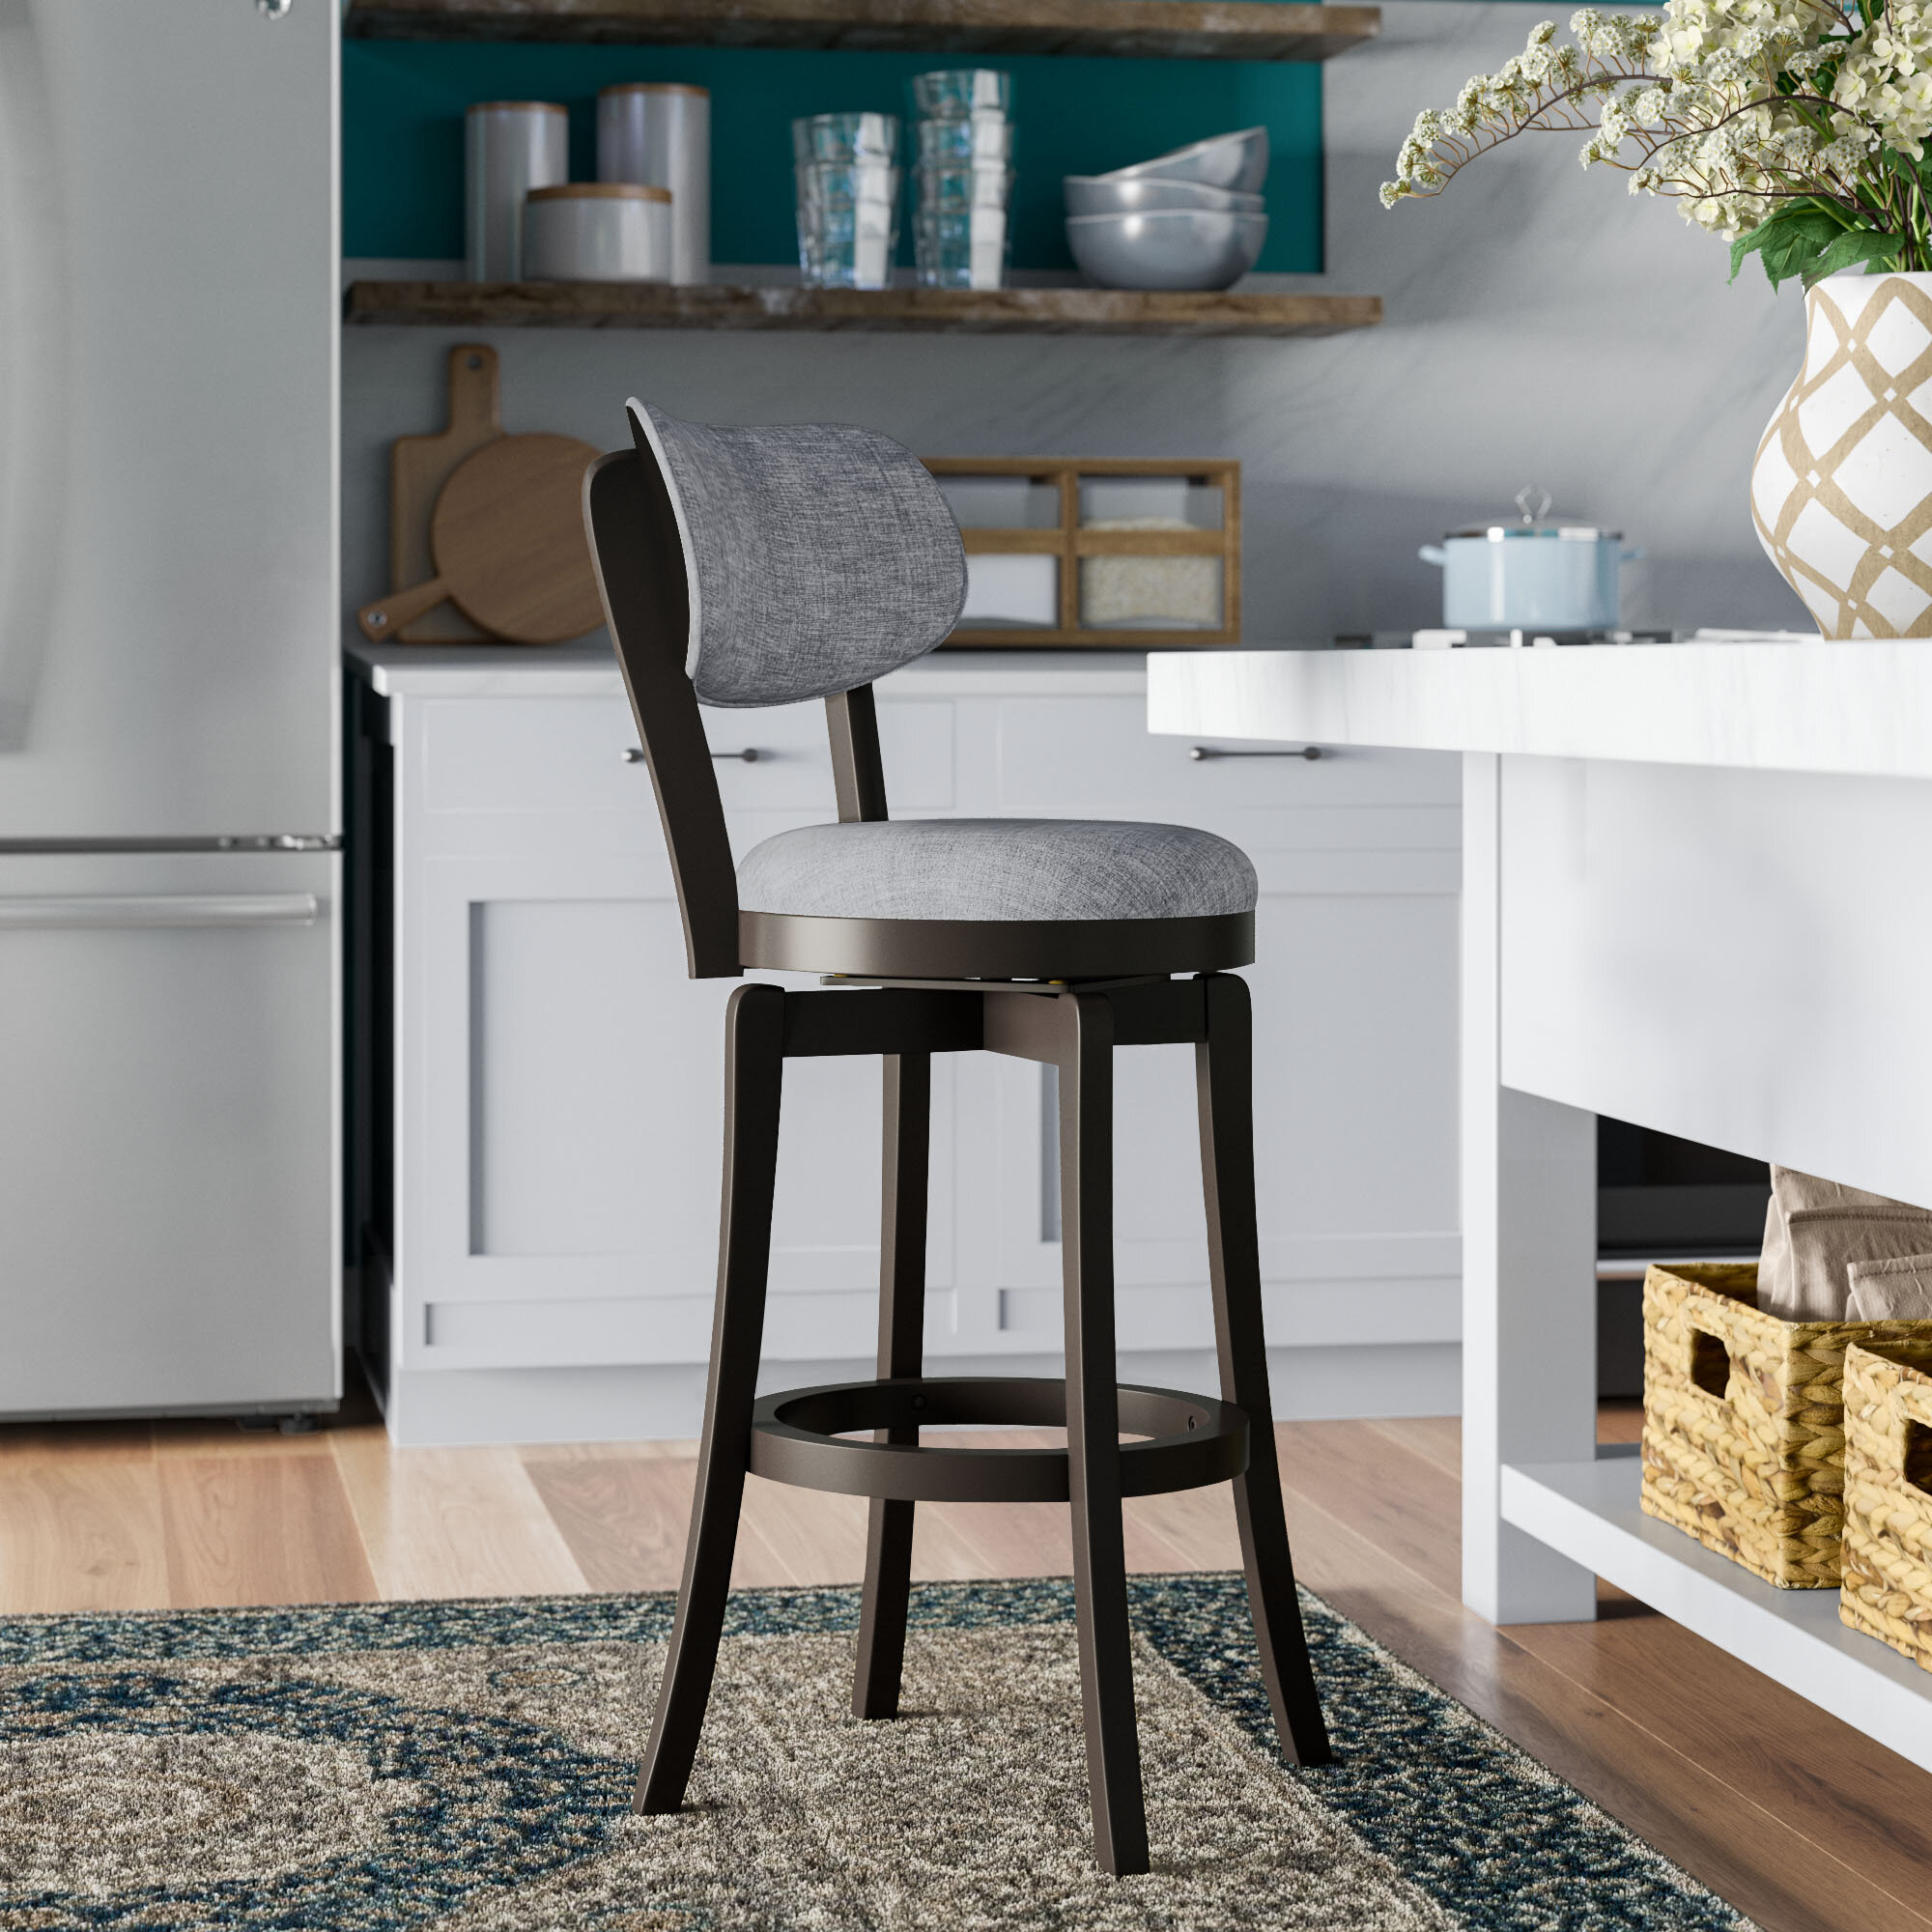 30 Inch Bar Stools You Ll Love In 2021 Visualhunt